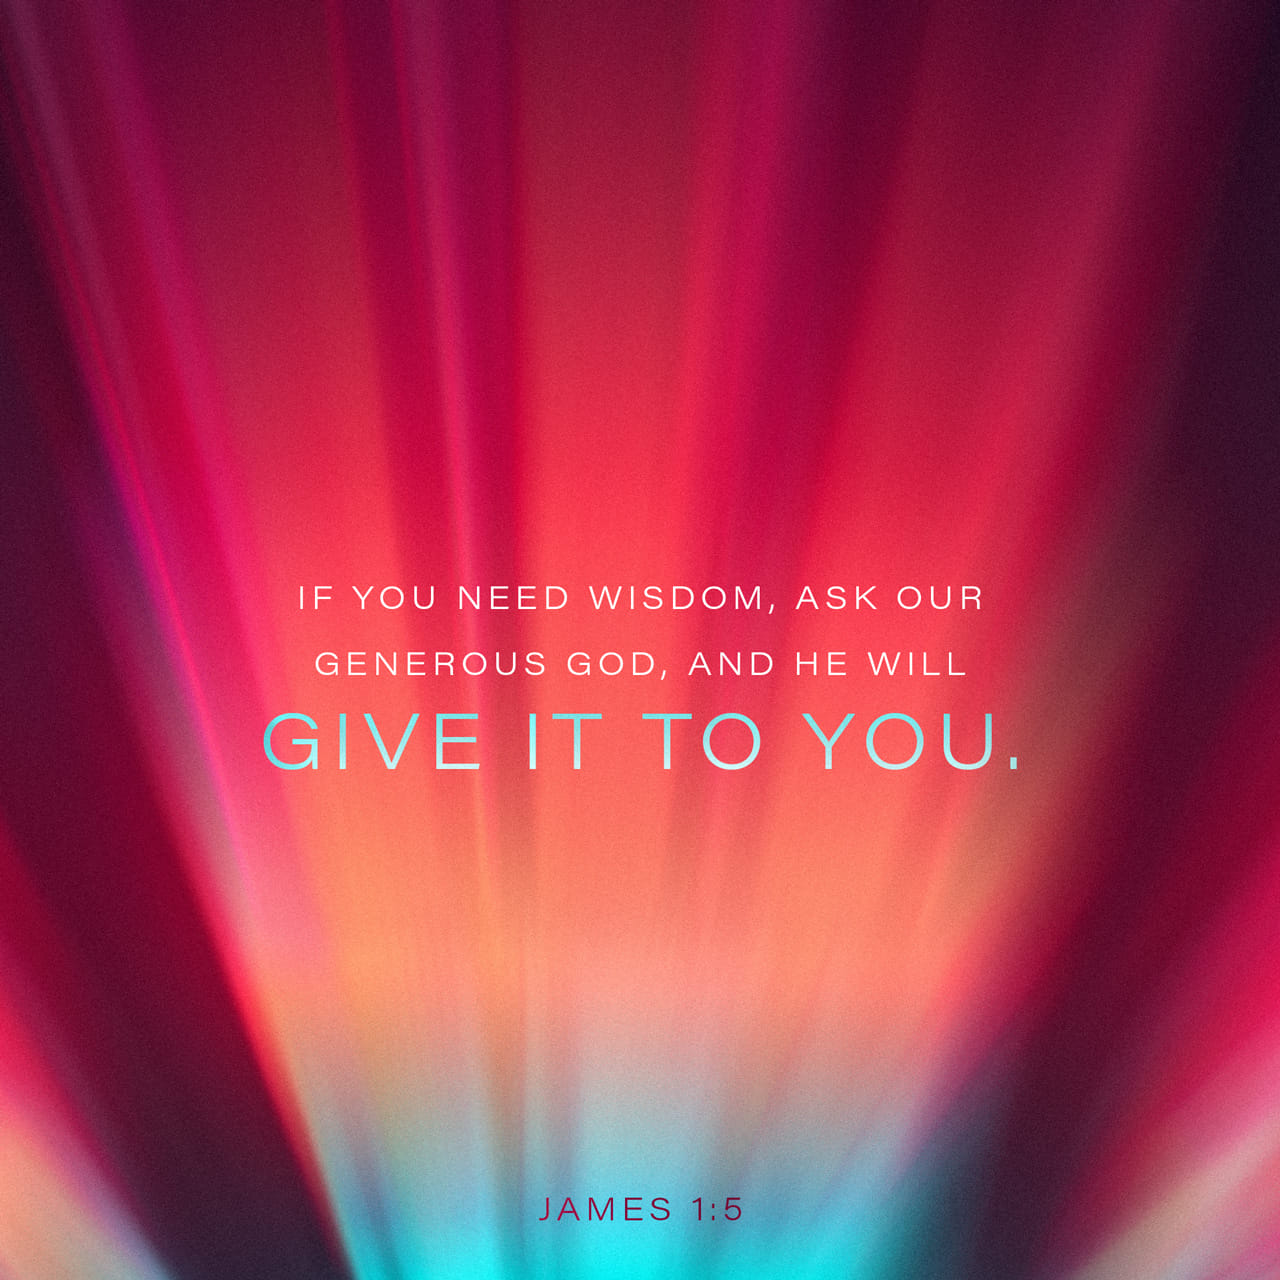 James 1:5 And if anyone longs to be wise, ask God for wisdom